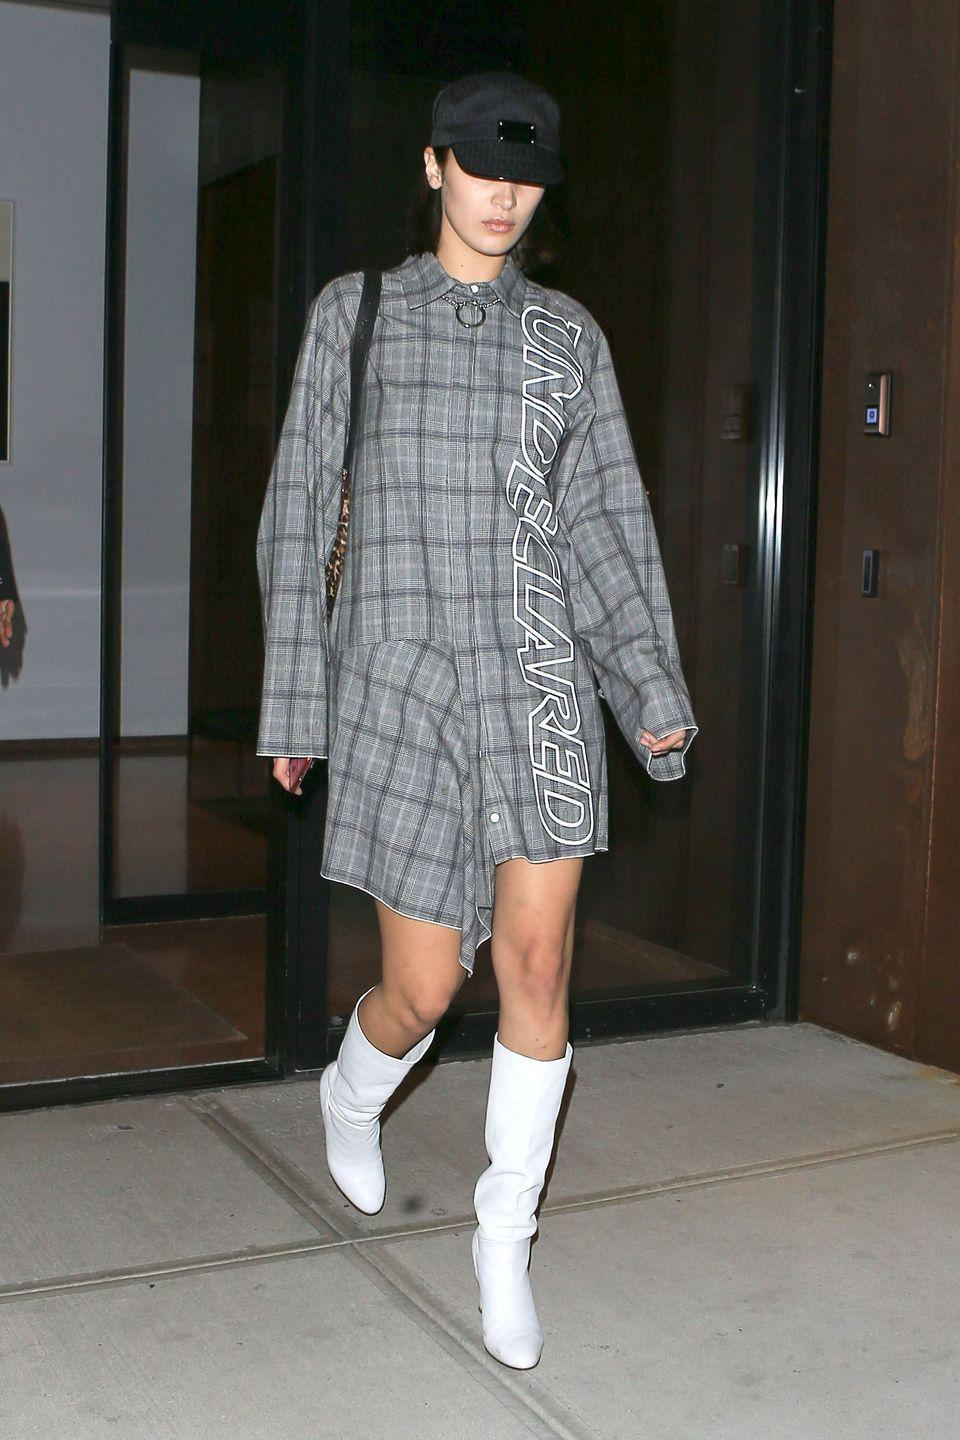 """<p>In a conductor hat, plaid """"Undeclared"""" shirt dress by Leo, leopard print bag, and white knee-high boots while out in New York.</p>"""